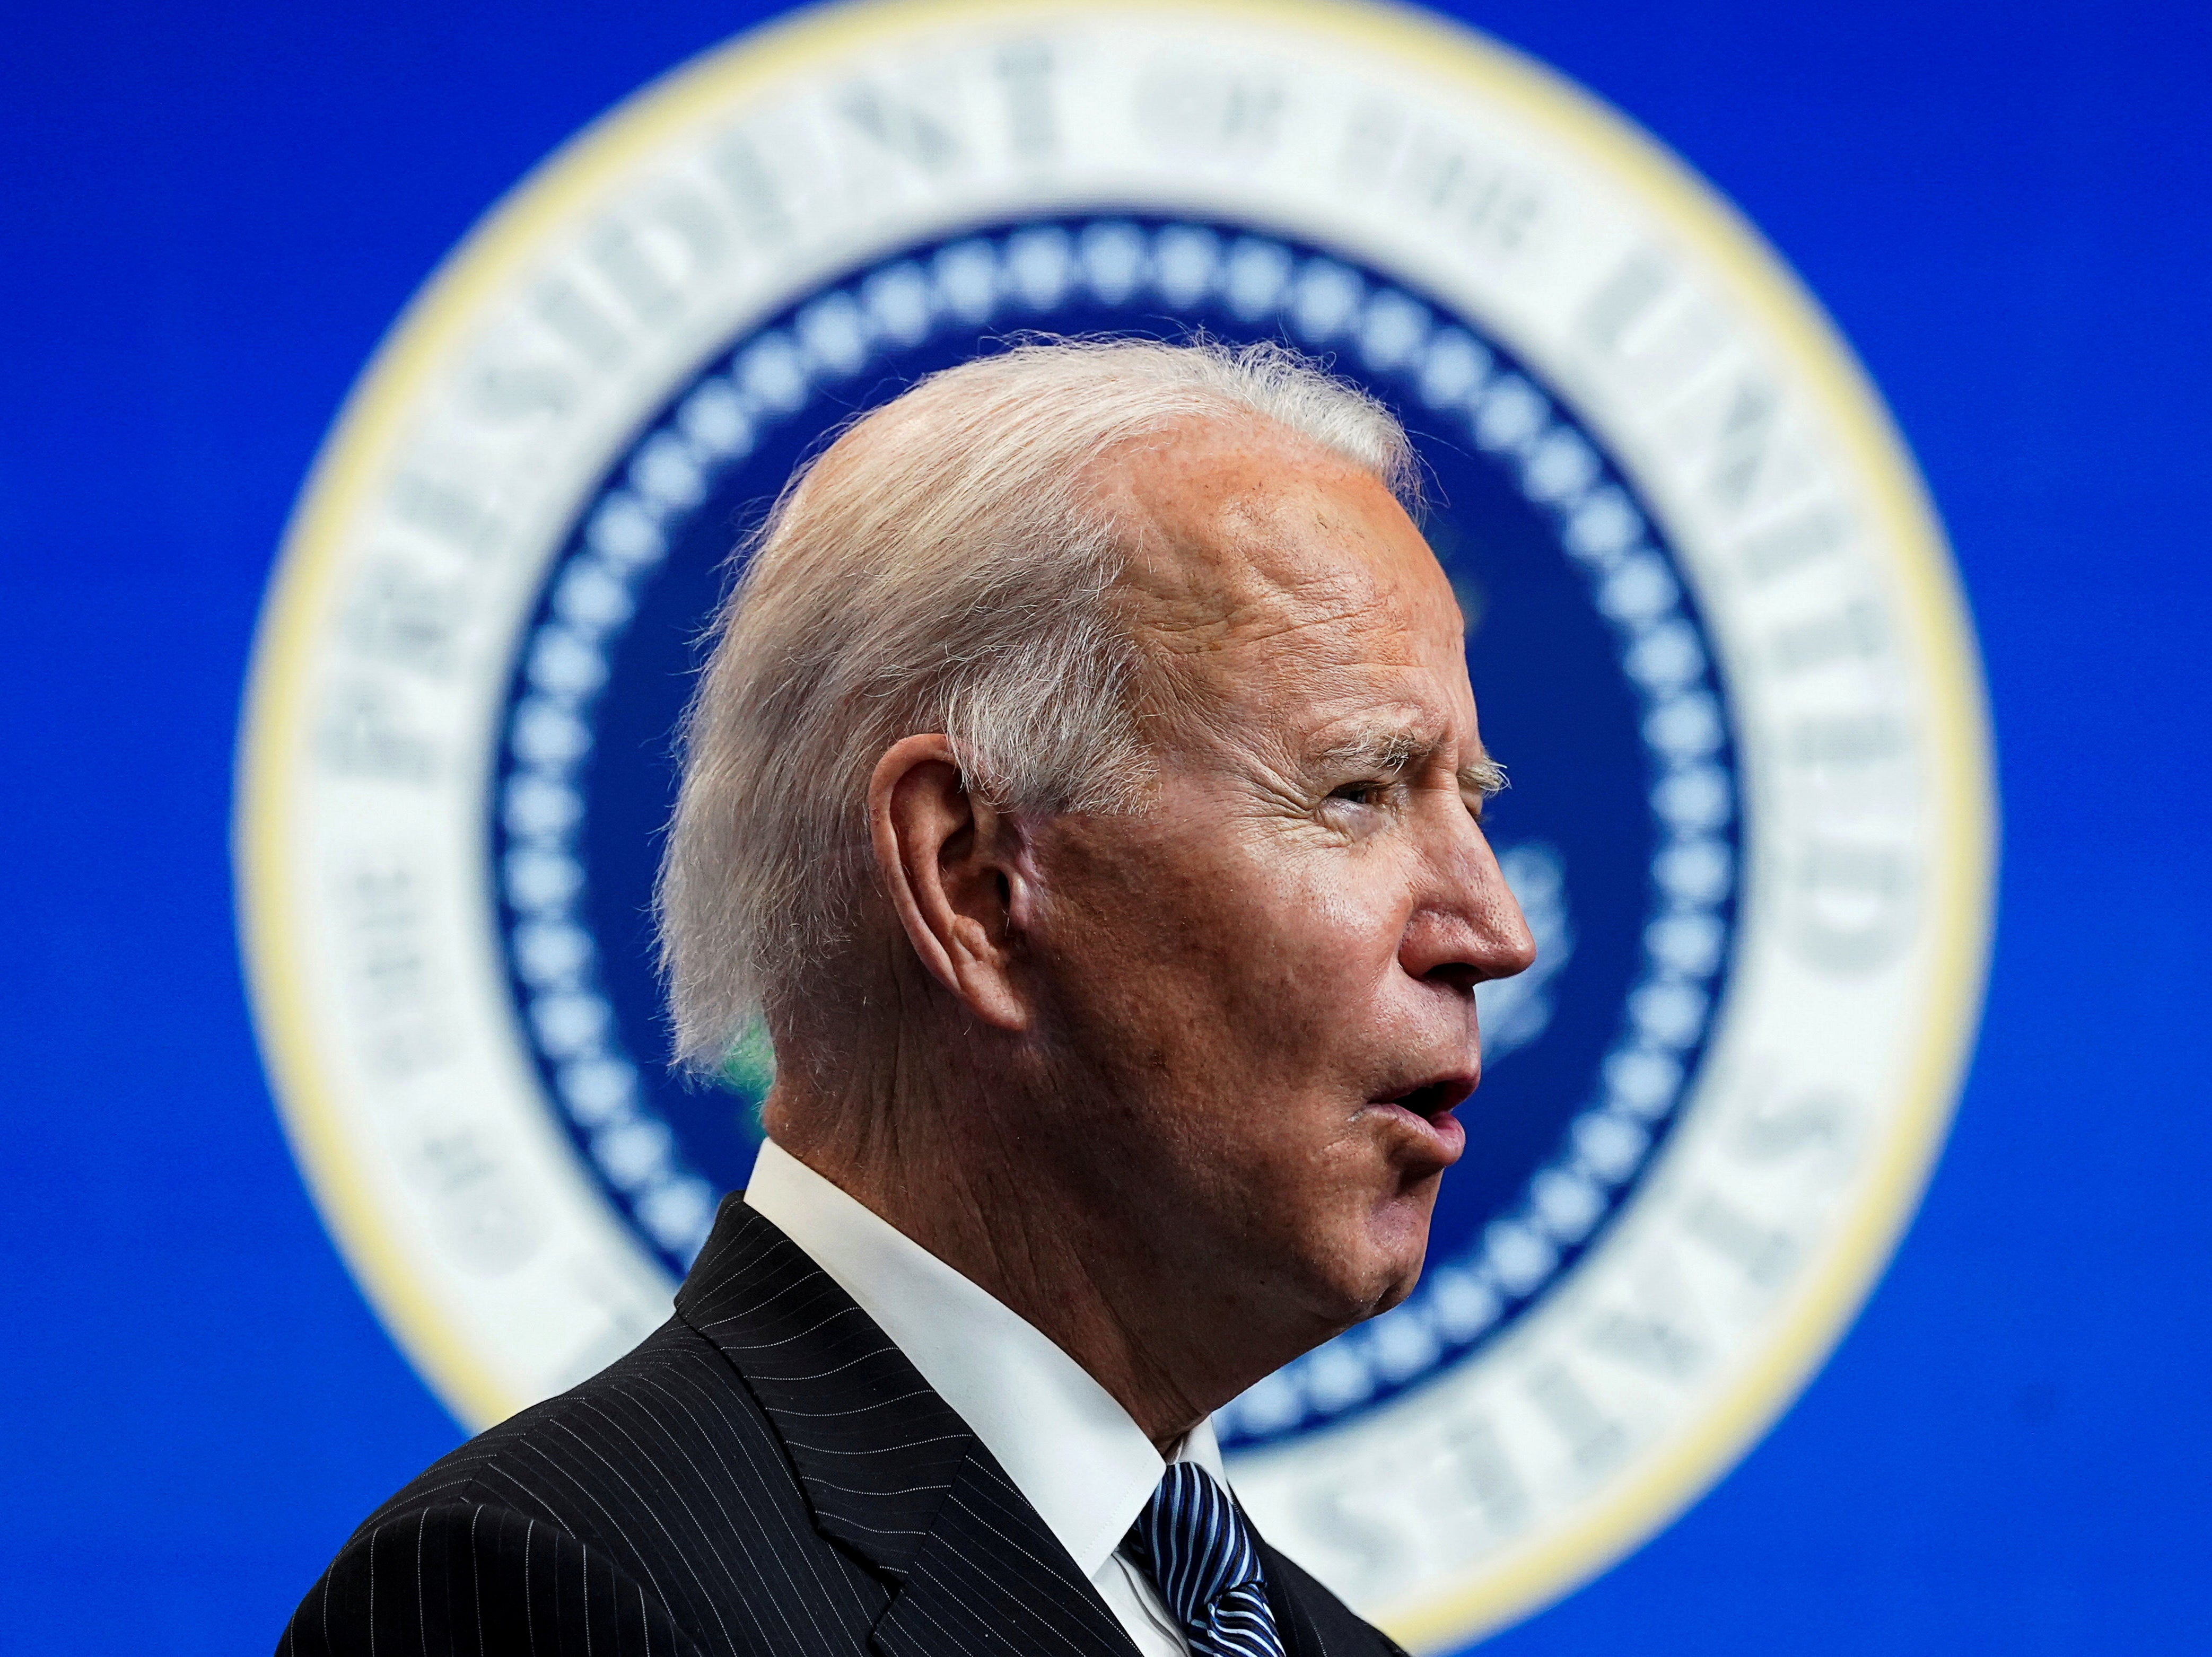 Biden polls 63 per cent in first presidential approval rating